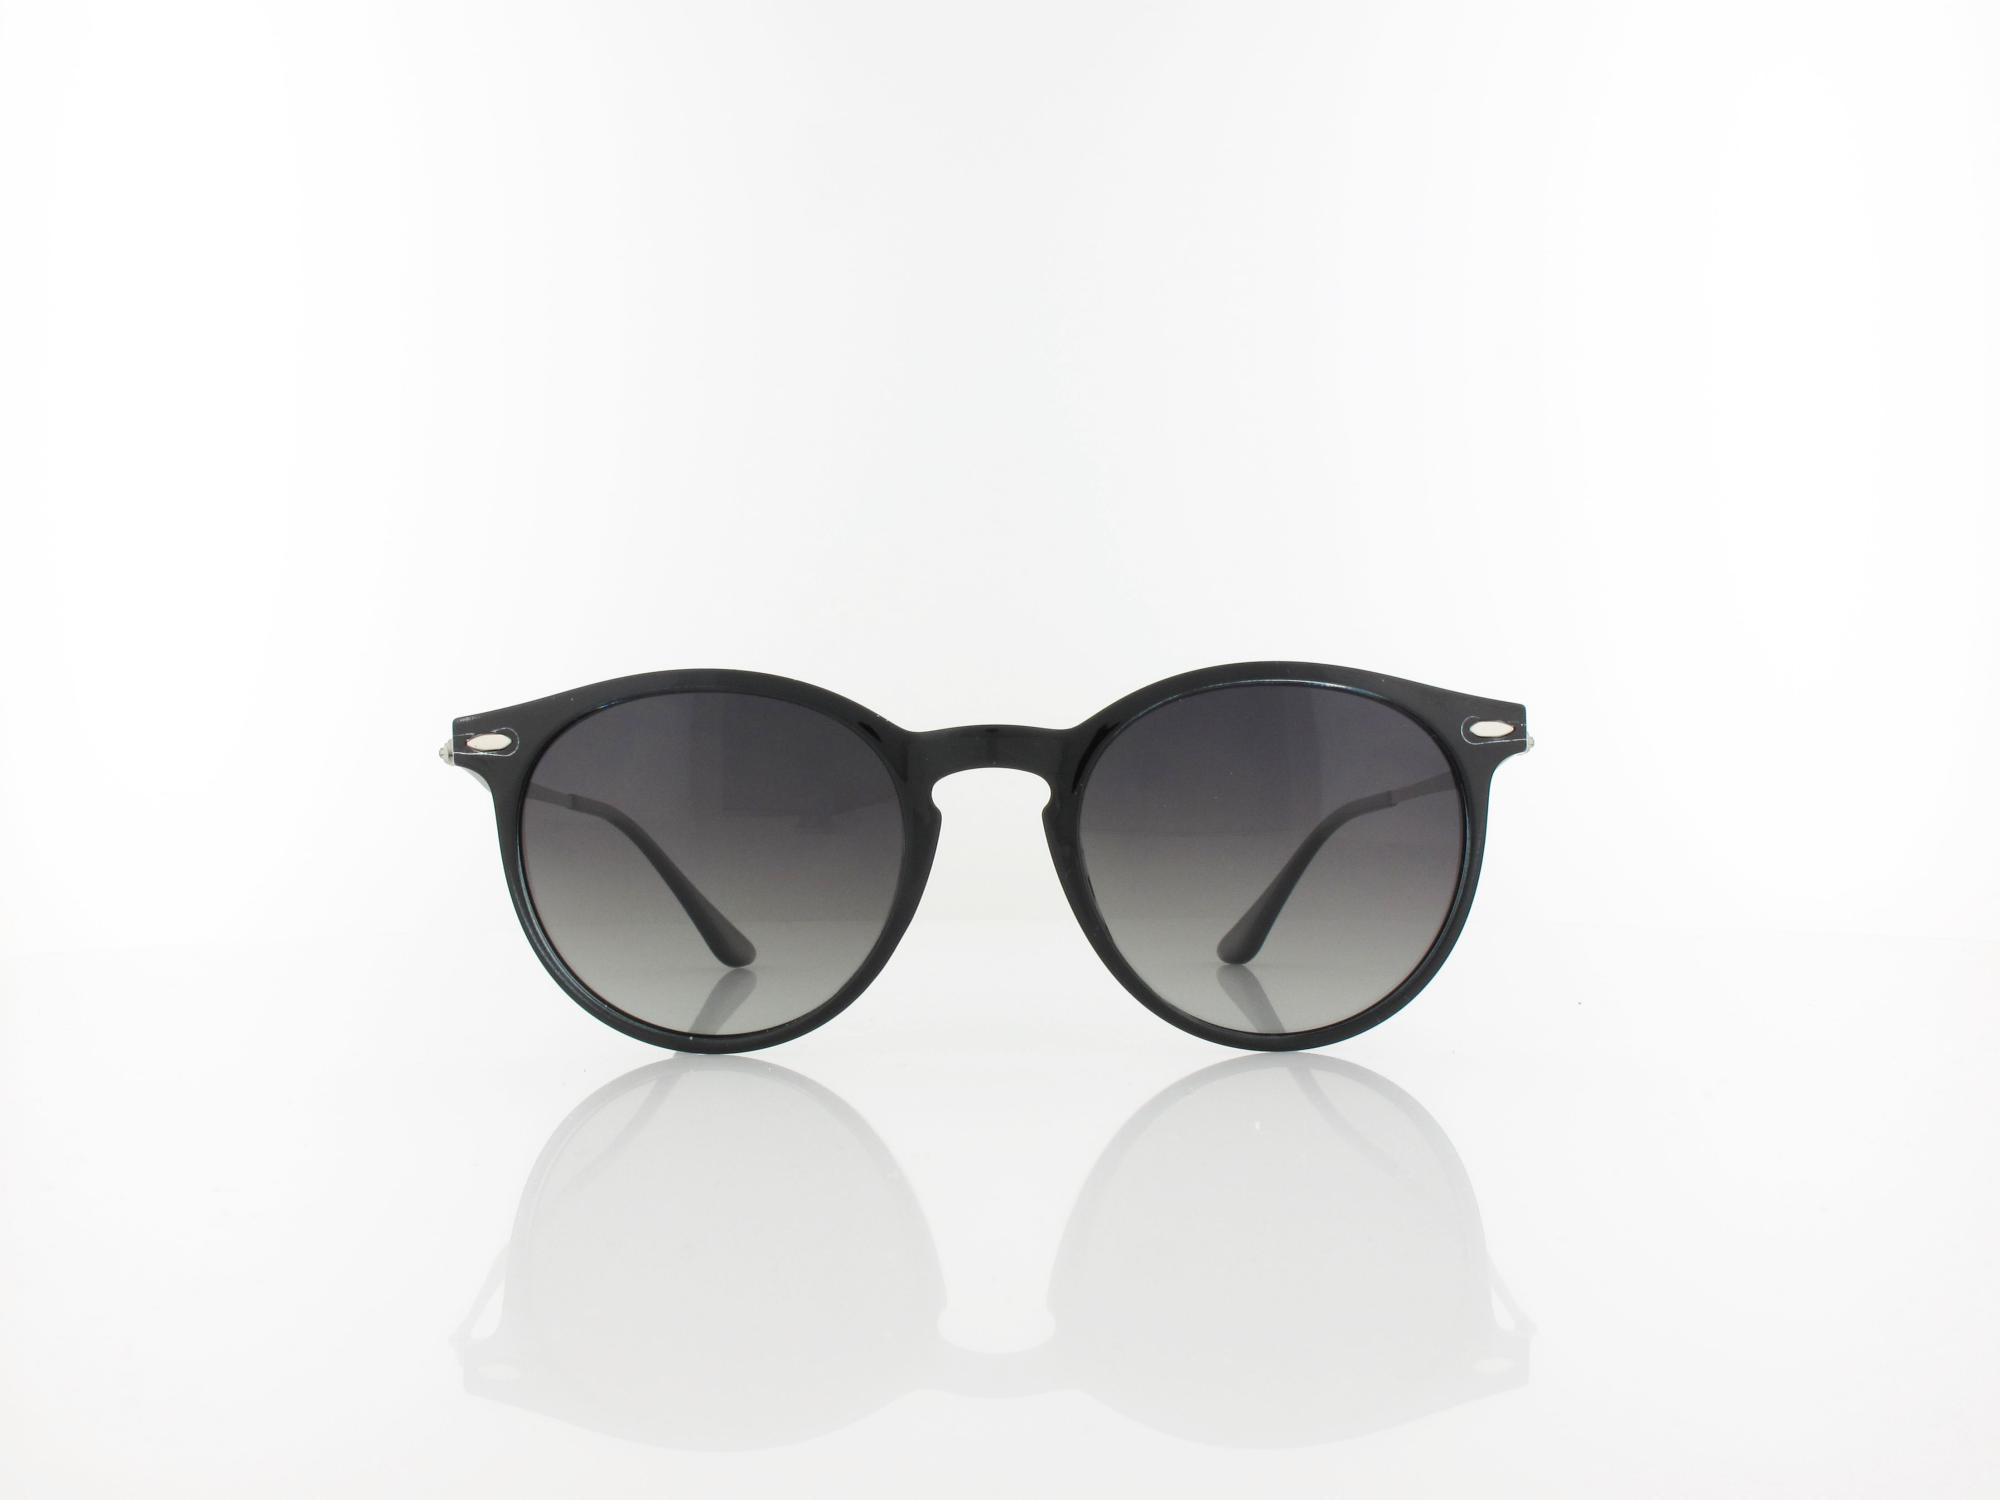 HIS polarized | HPS88113-2 50 | black / smoke polarized